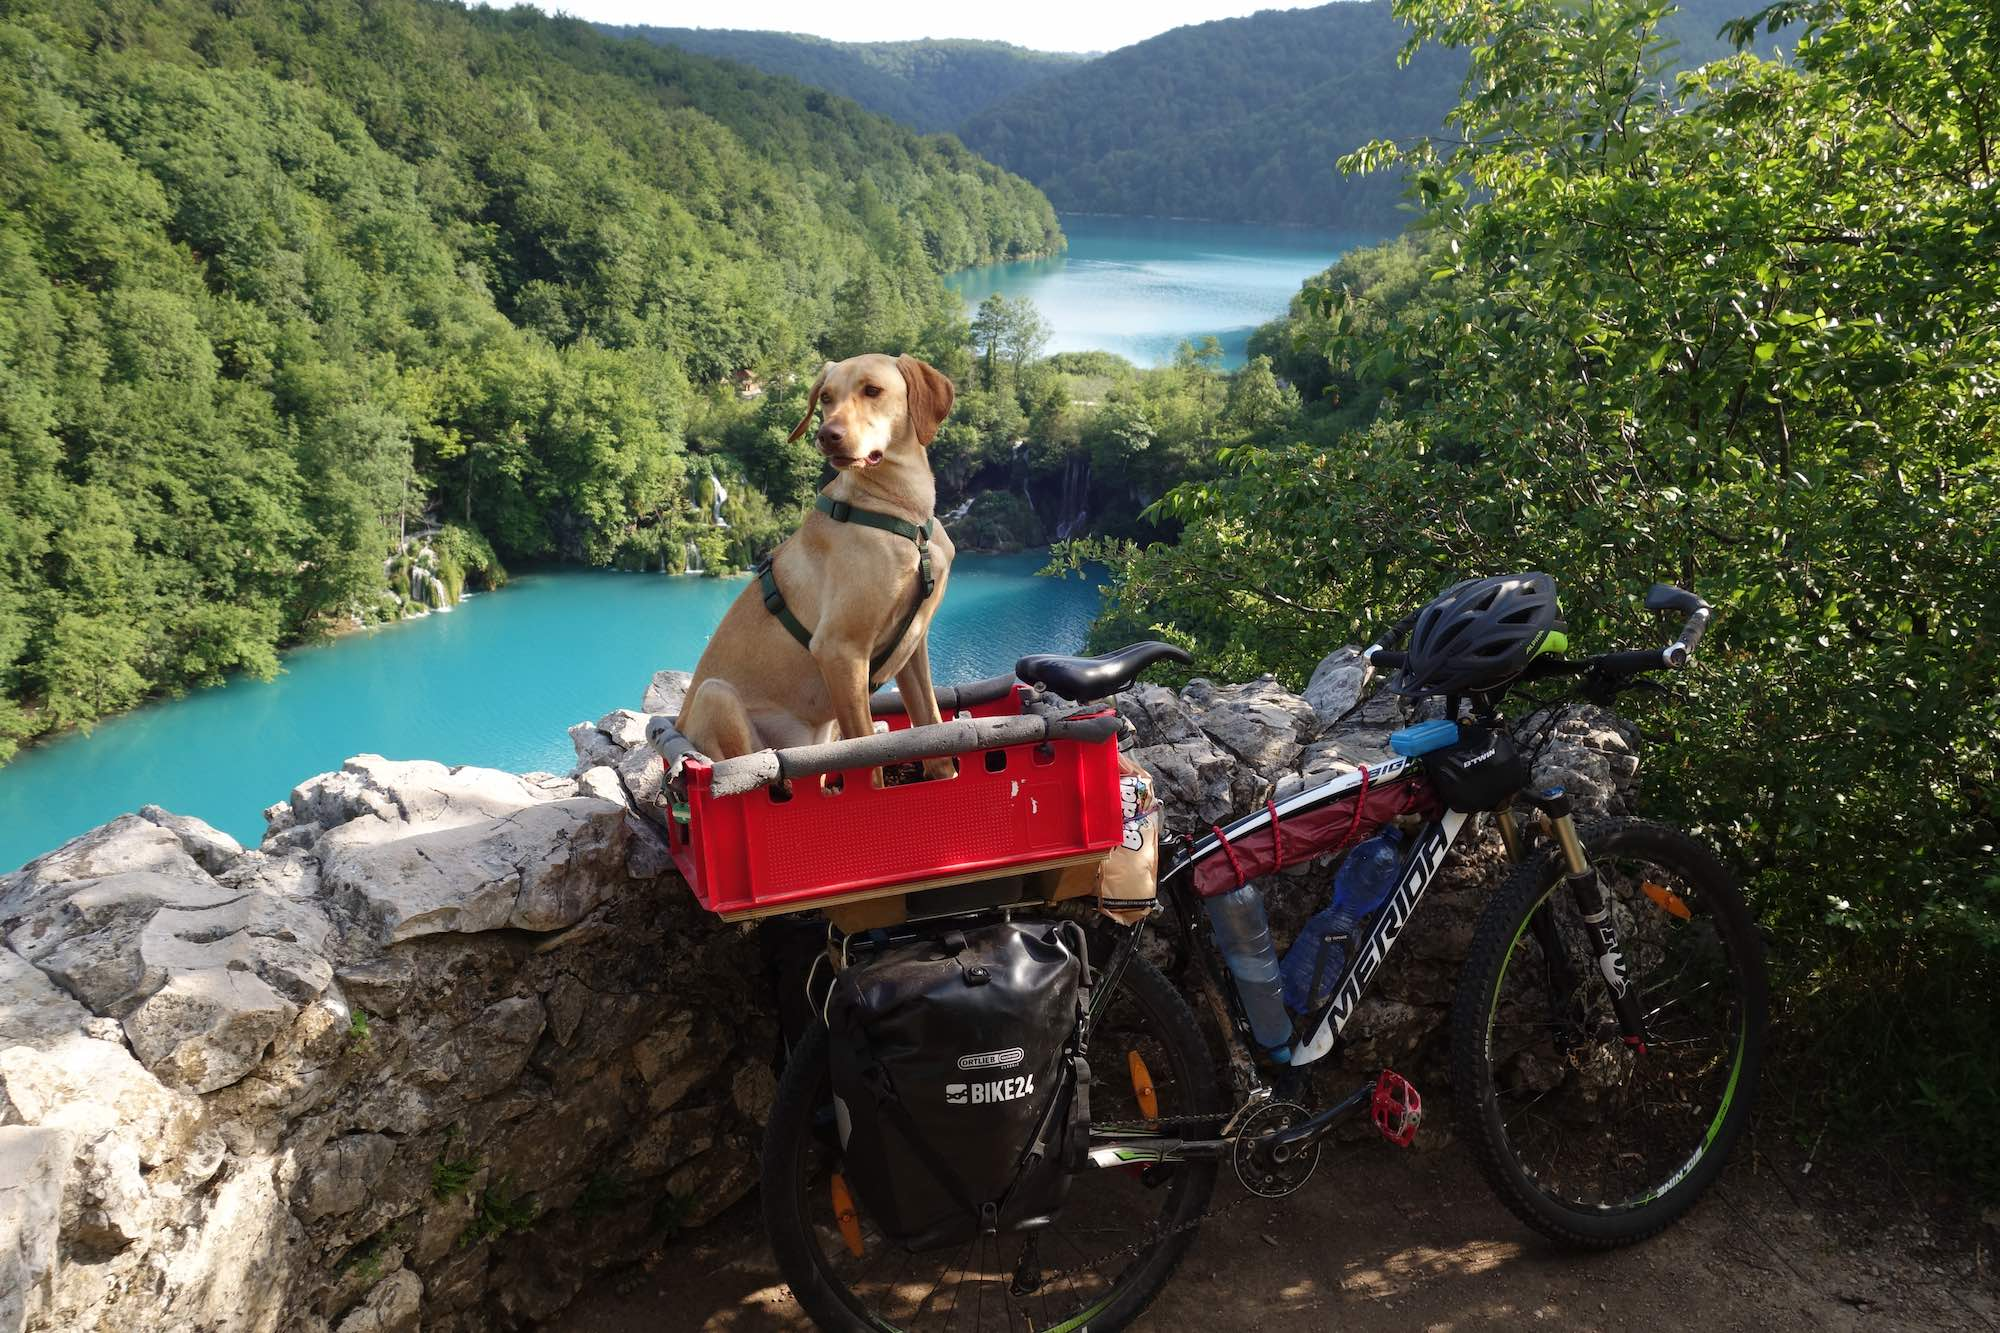 Biking from Austria to Croatia